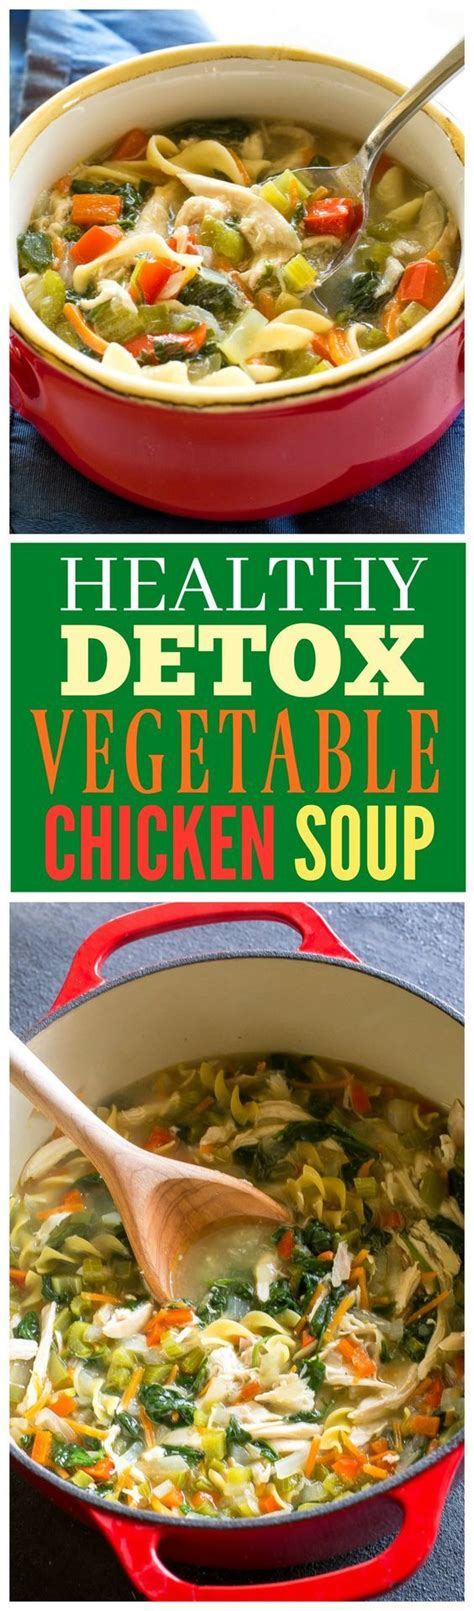 Chicken Detox Soup Calories by Healthy Vegetable Chicken Soup This Soup Is Of